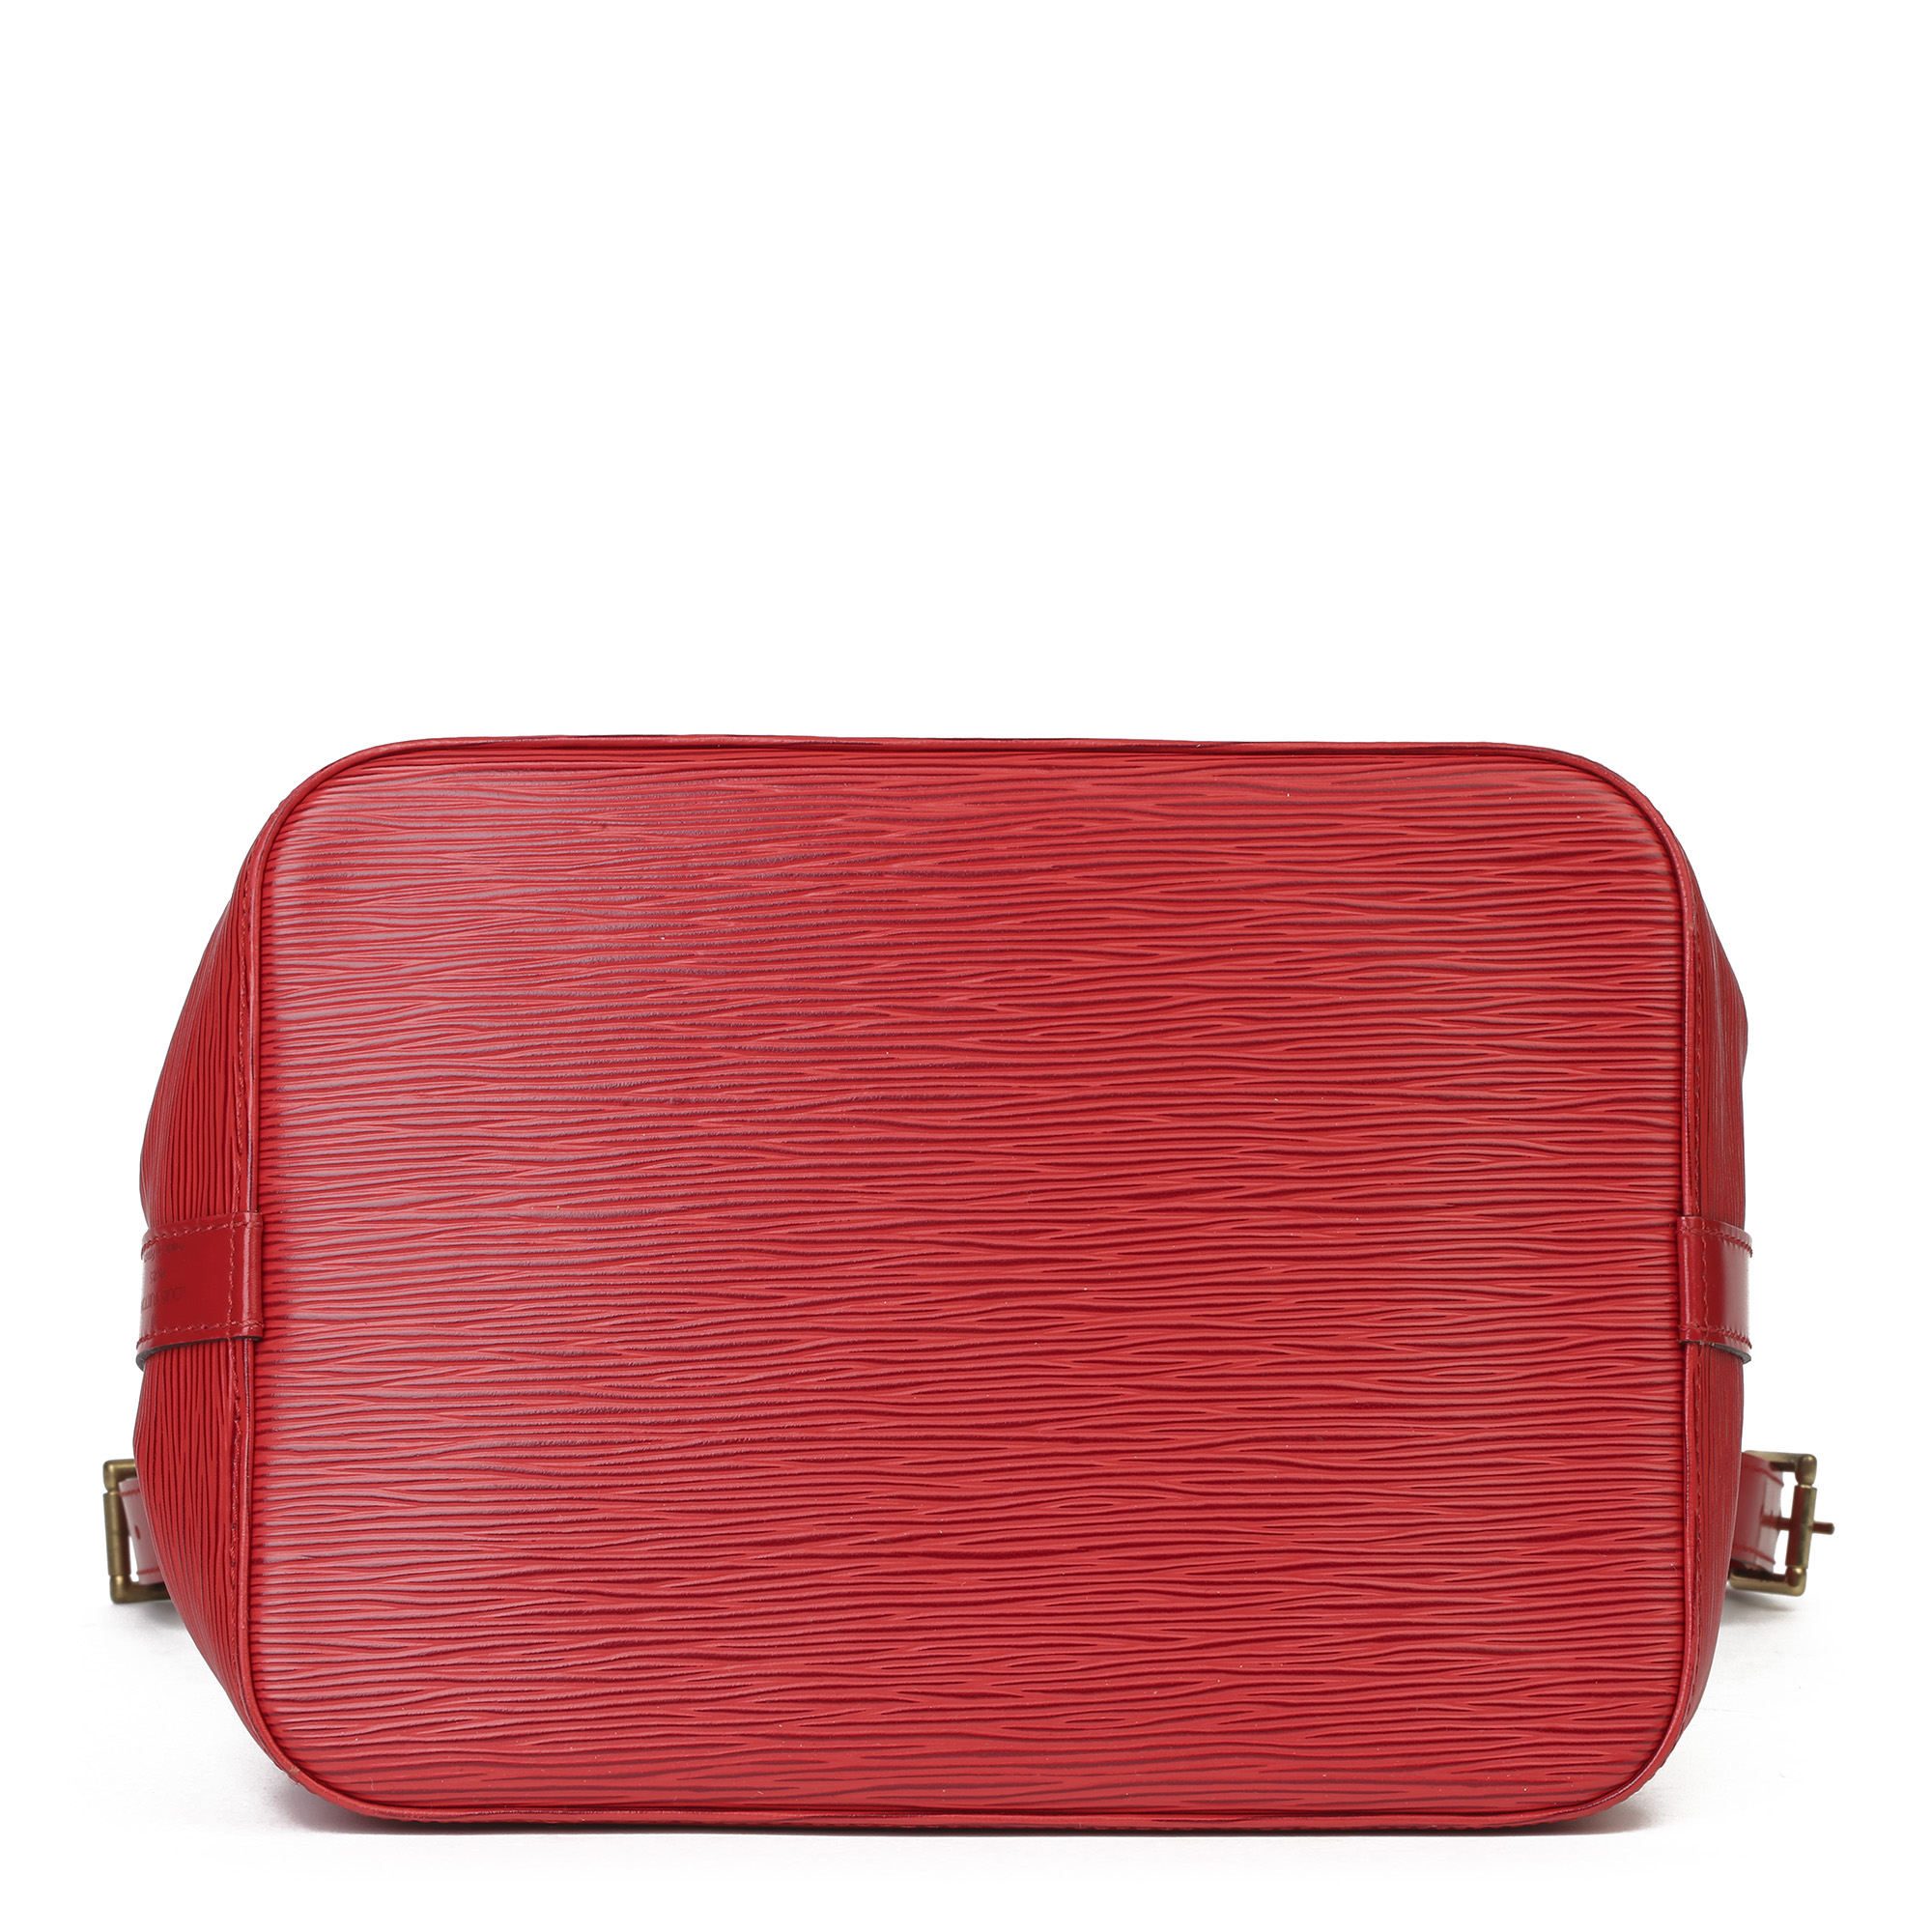 Louis Vuitton Red Epi Leather Vintage Petit NoŽ - Image 8 of 11